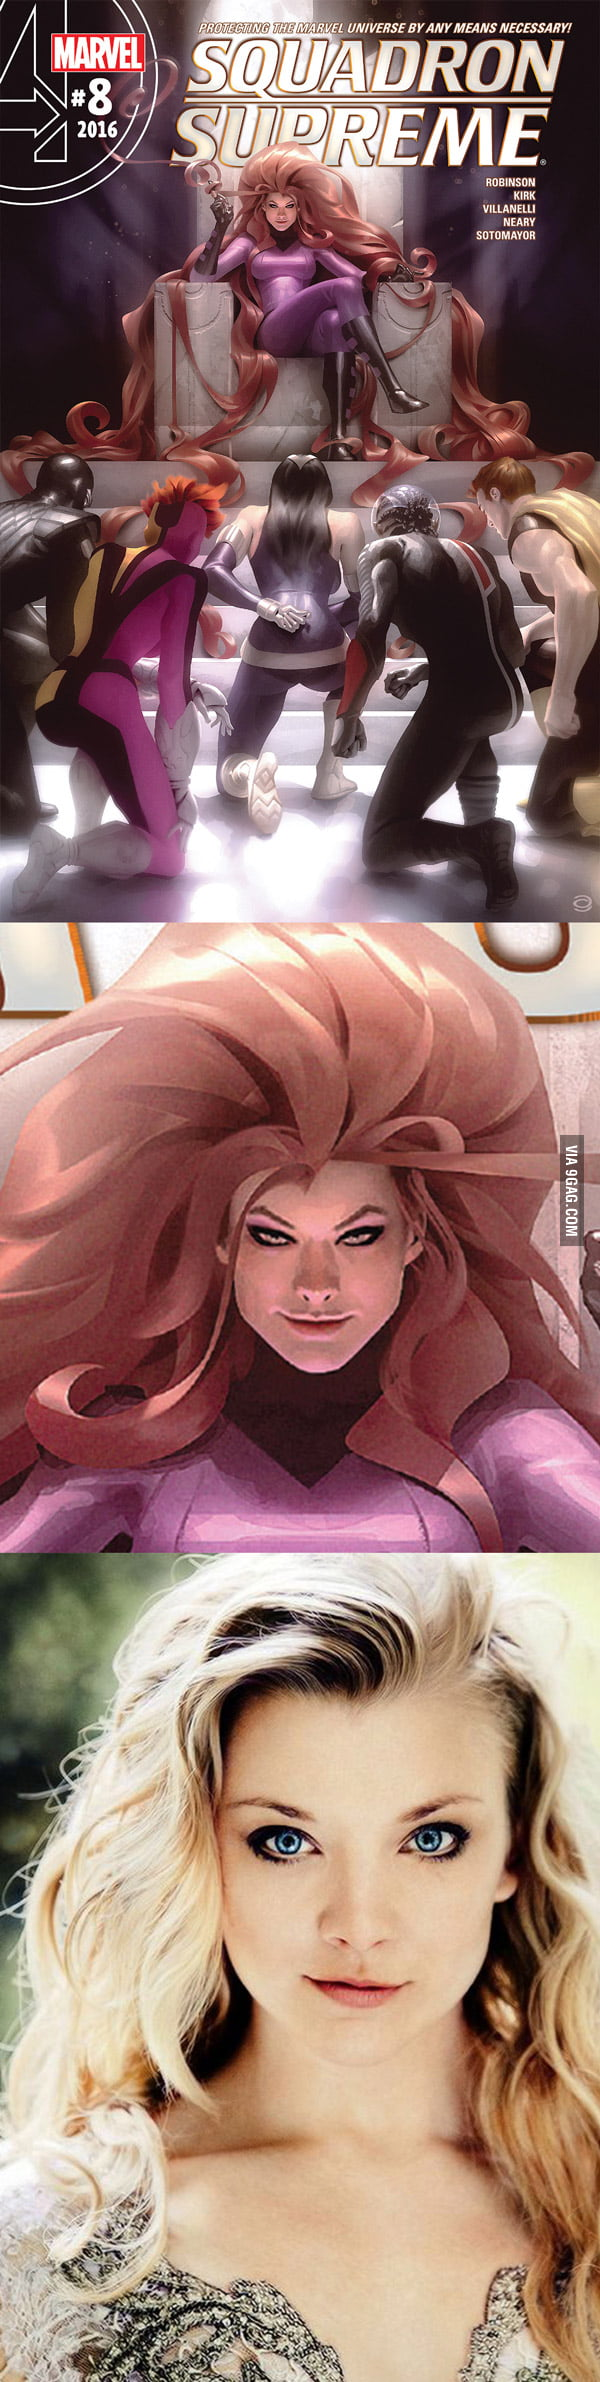 hey marvel need a casting idea for medusa if you finally make